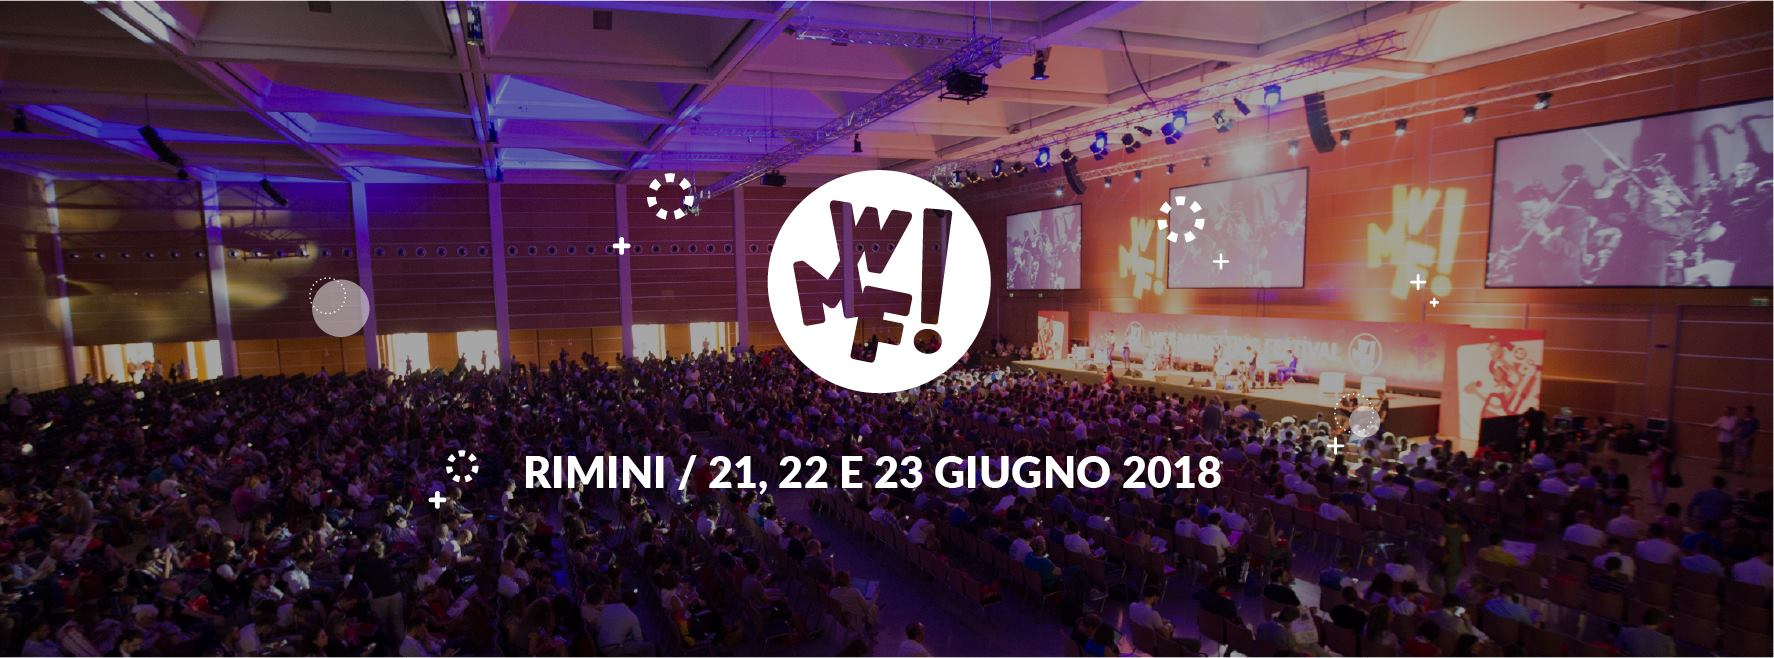 7 - web marketing festival